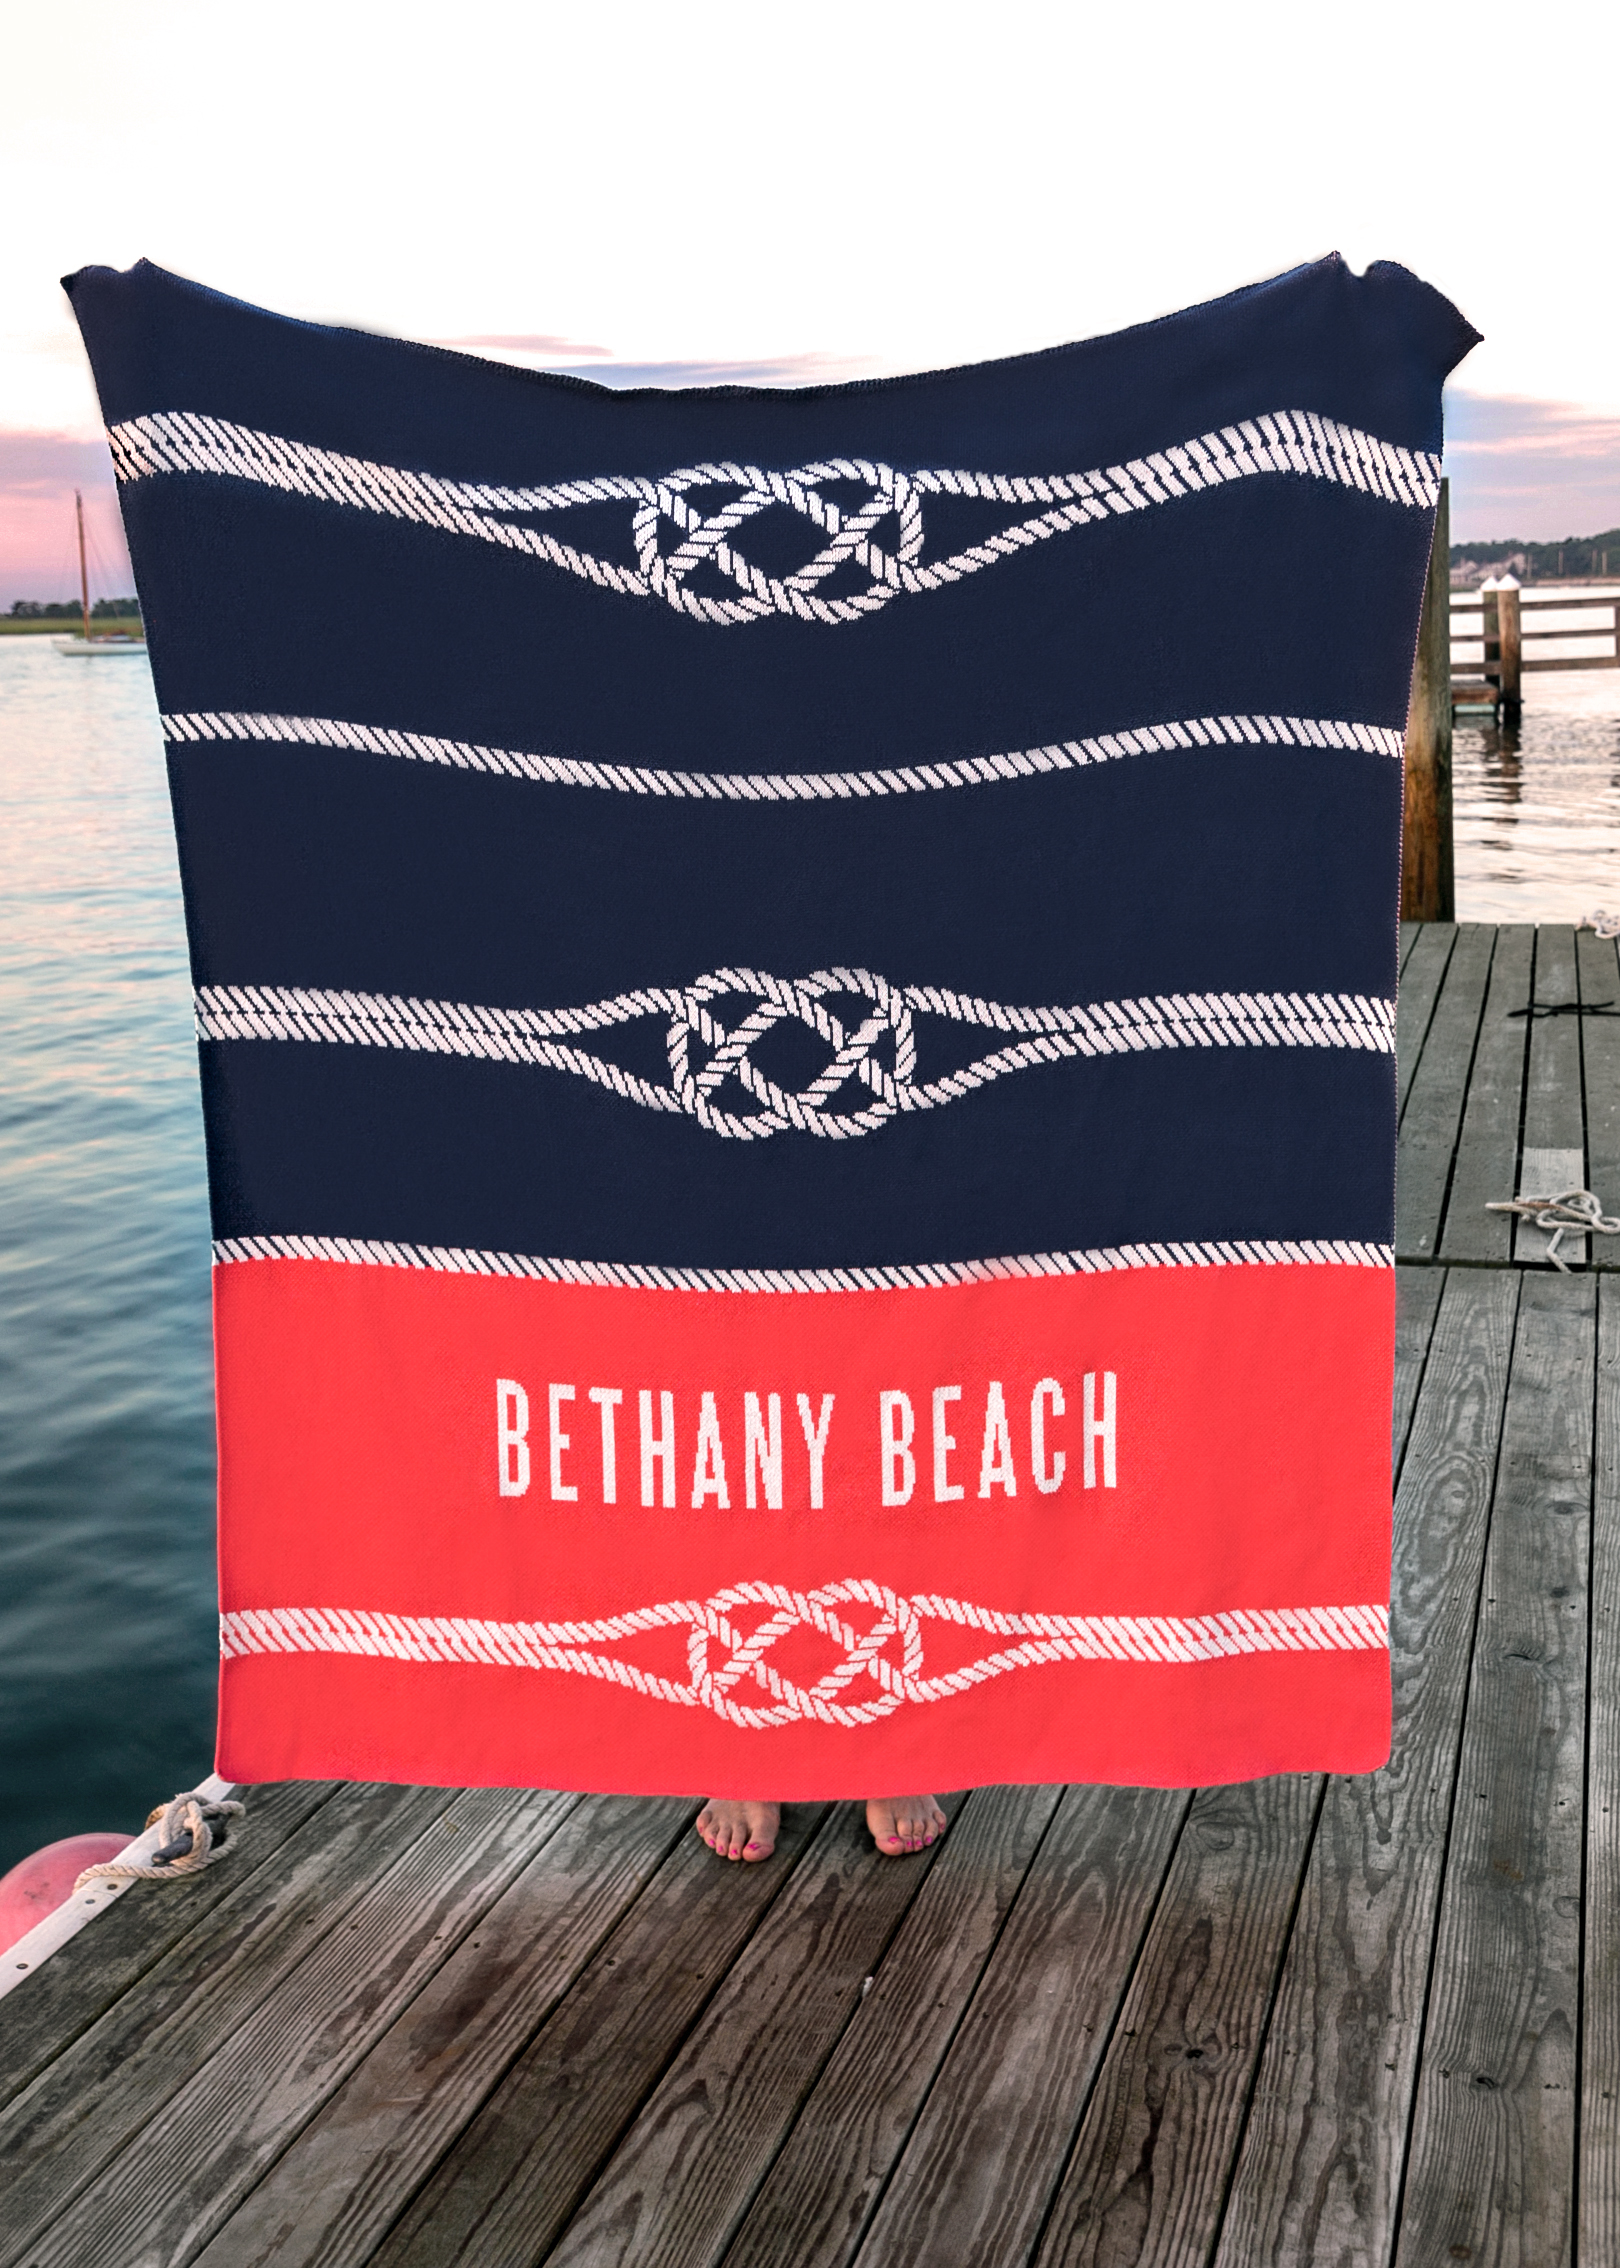 Custom Rope_Bethany Beach copy.jpg